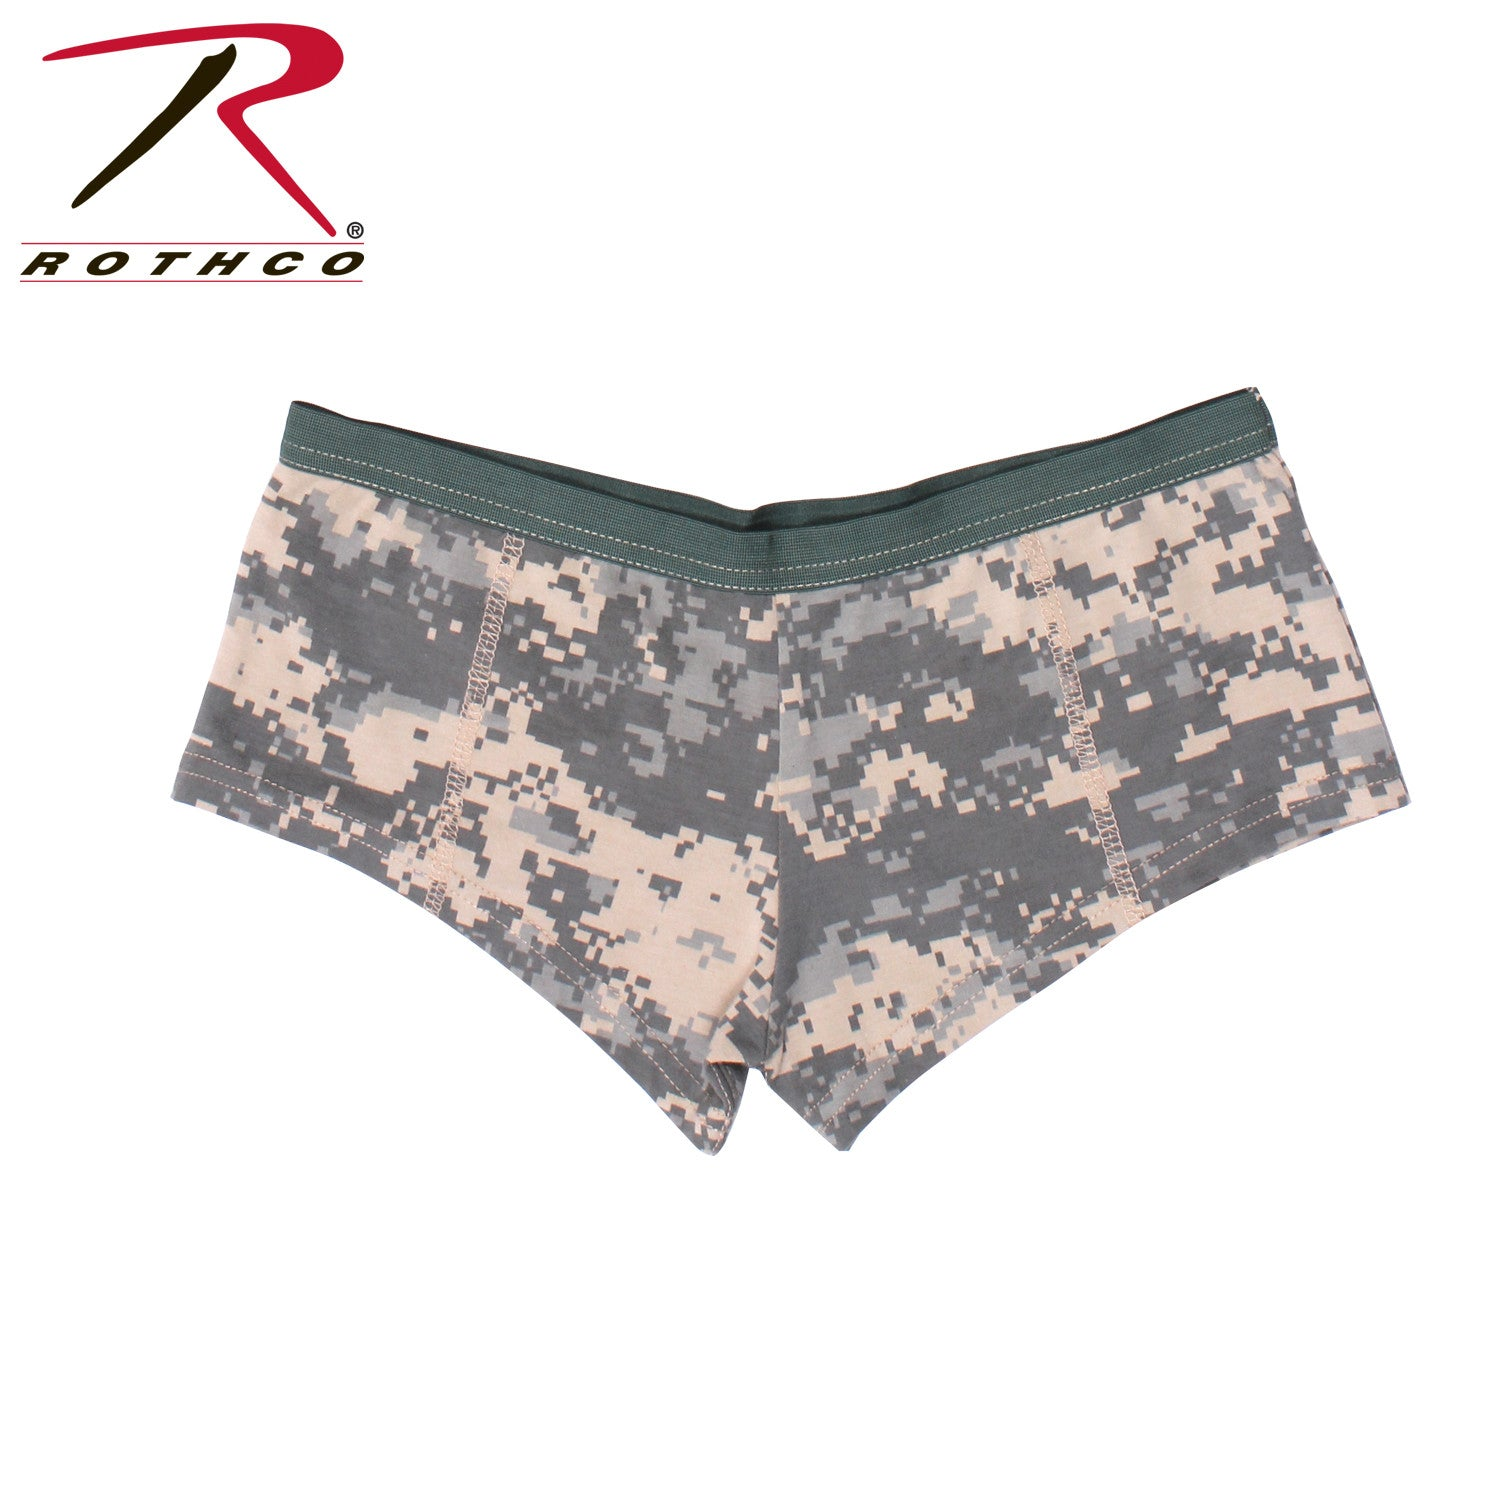 Rothco Womens Wild Game//Booty Shorts